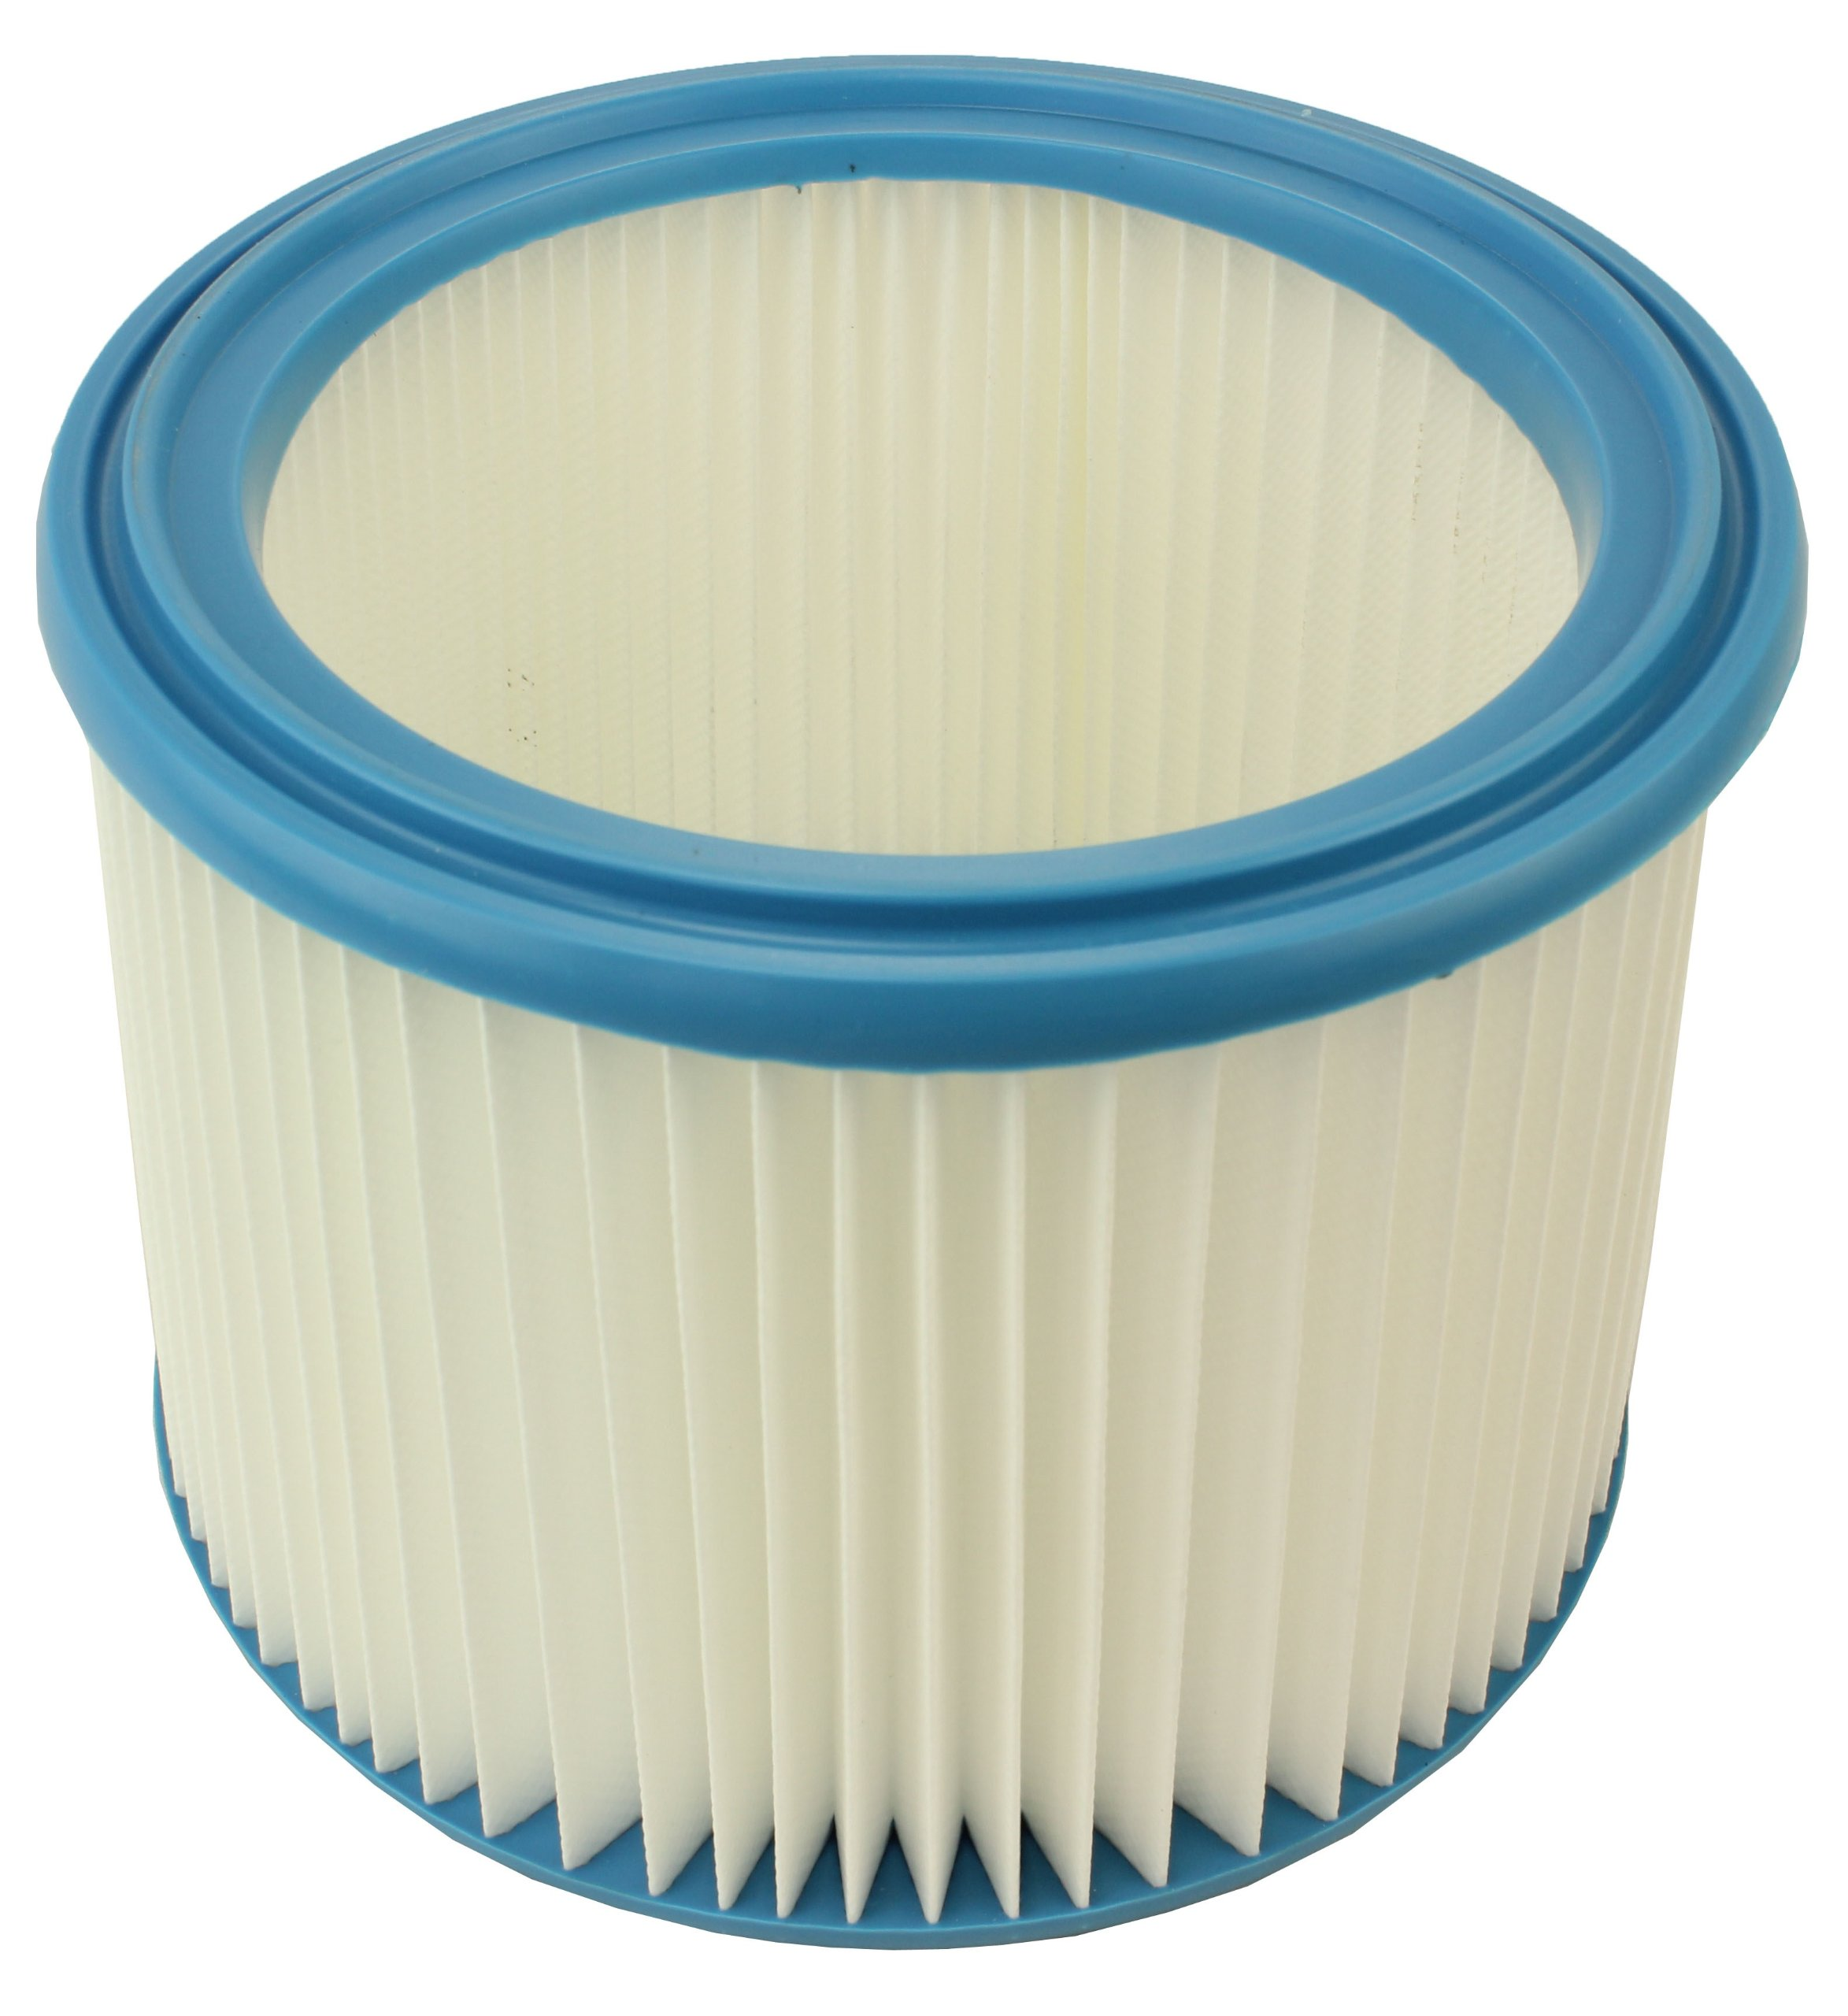 Spares2go Filter Cartridge For Nilfisk Wap Alto Attix 8 12 And 19 Gallon Vacuum Cleaners (Fully Washable)